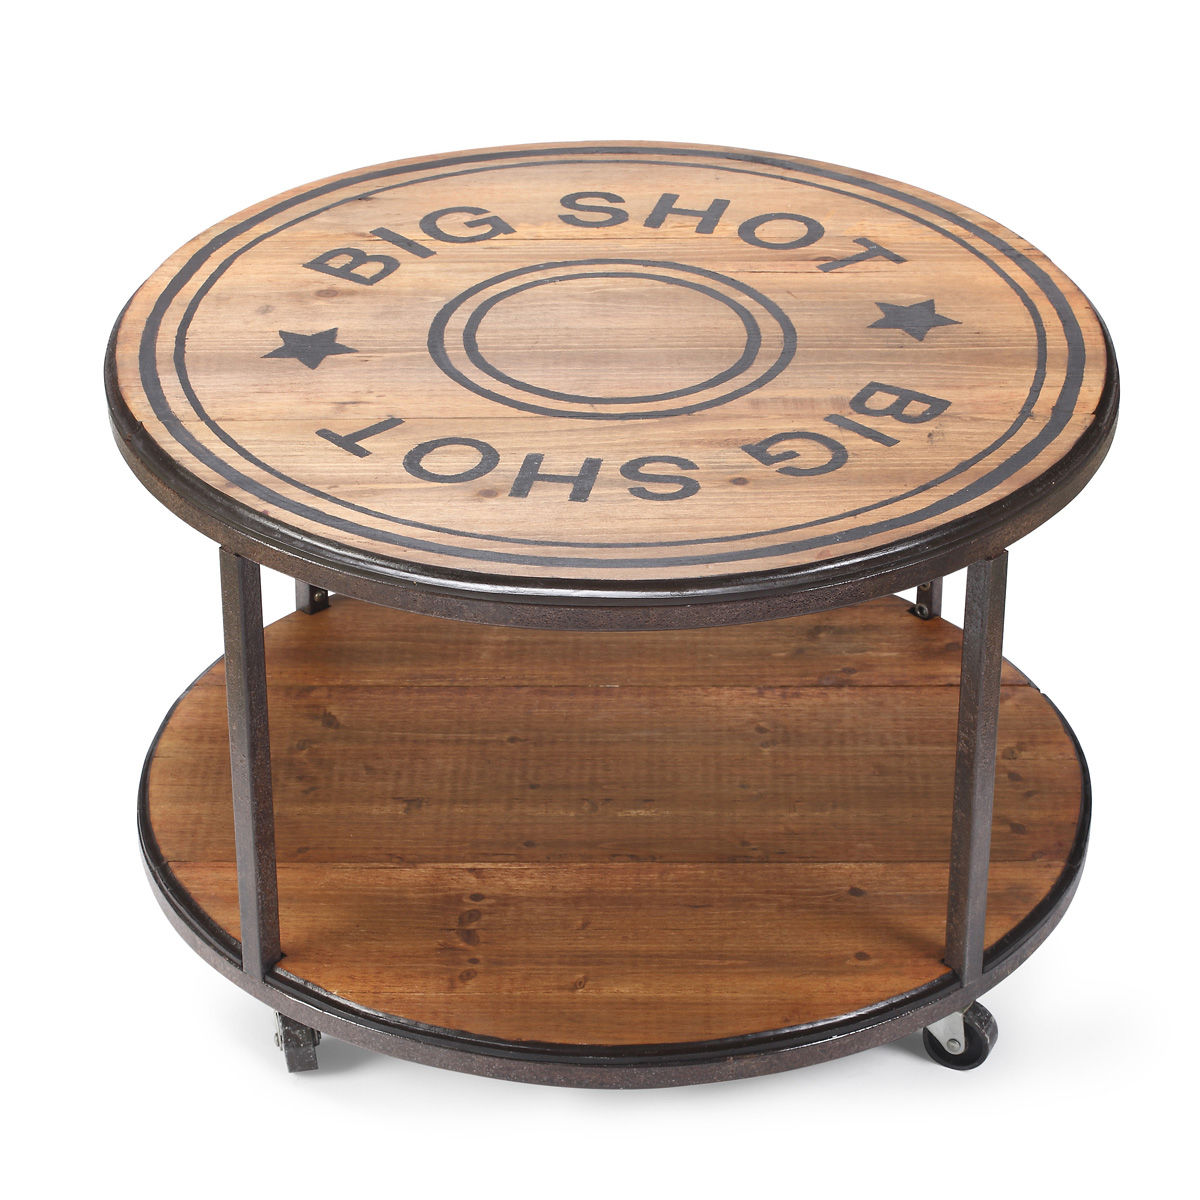 DM Big Shot Round Coffee Table with Wheels